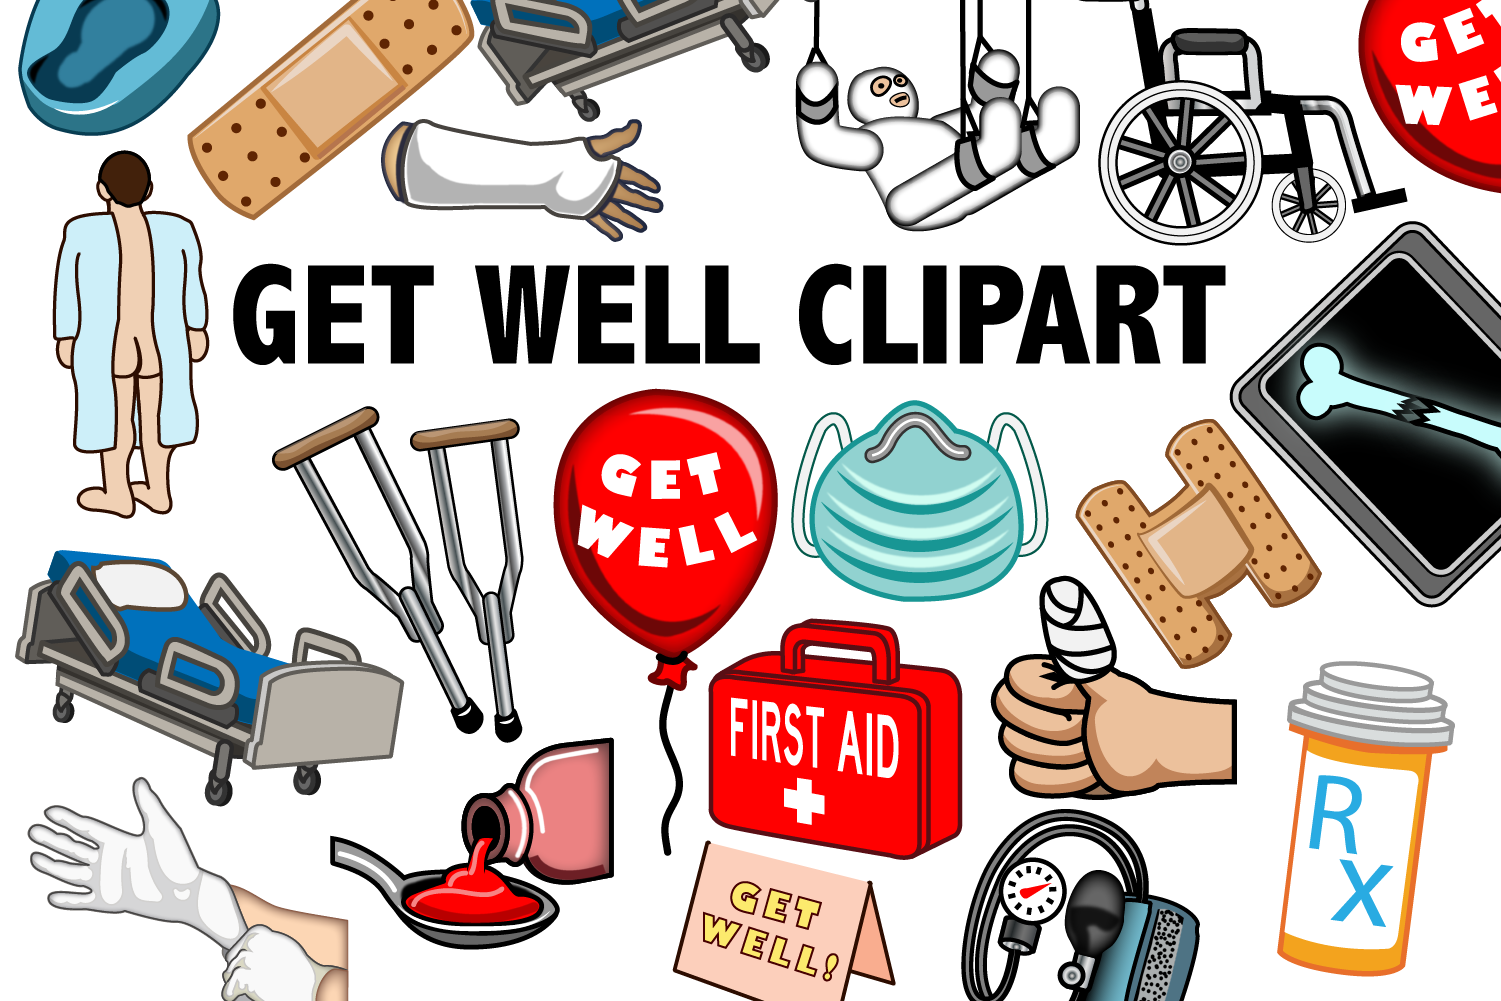 Download Free Get Well Clipart Graphic By Mine Eyes Design Creative Fabrica for Cricut Explore, Silhouette and other cutting machines.